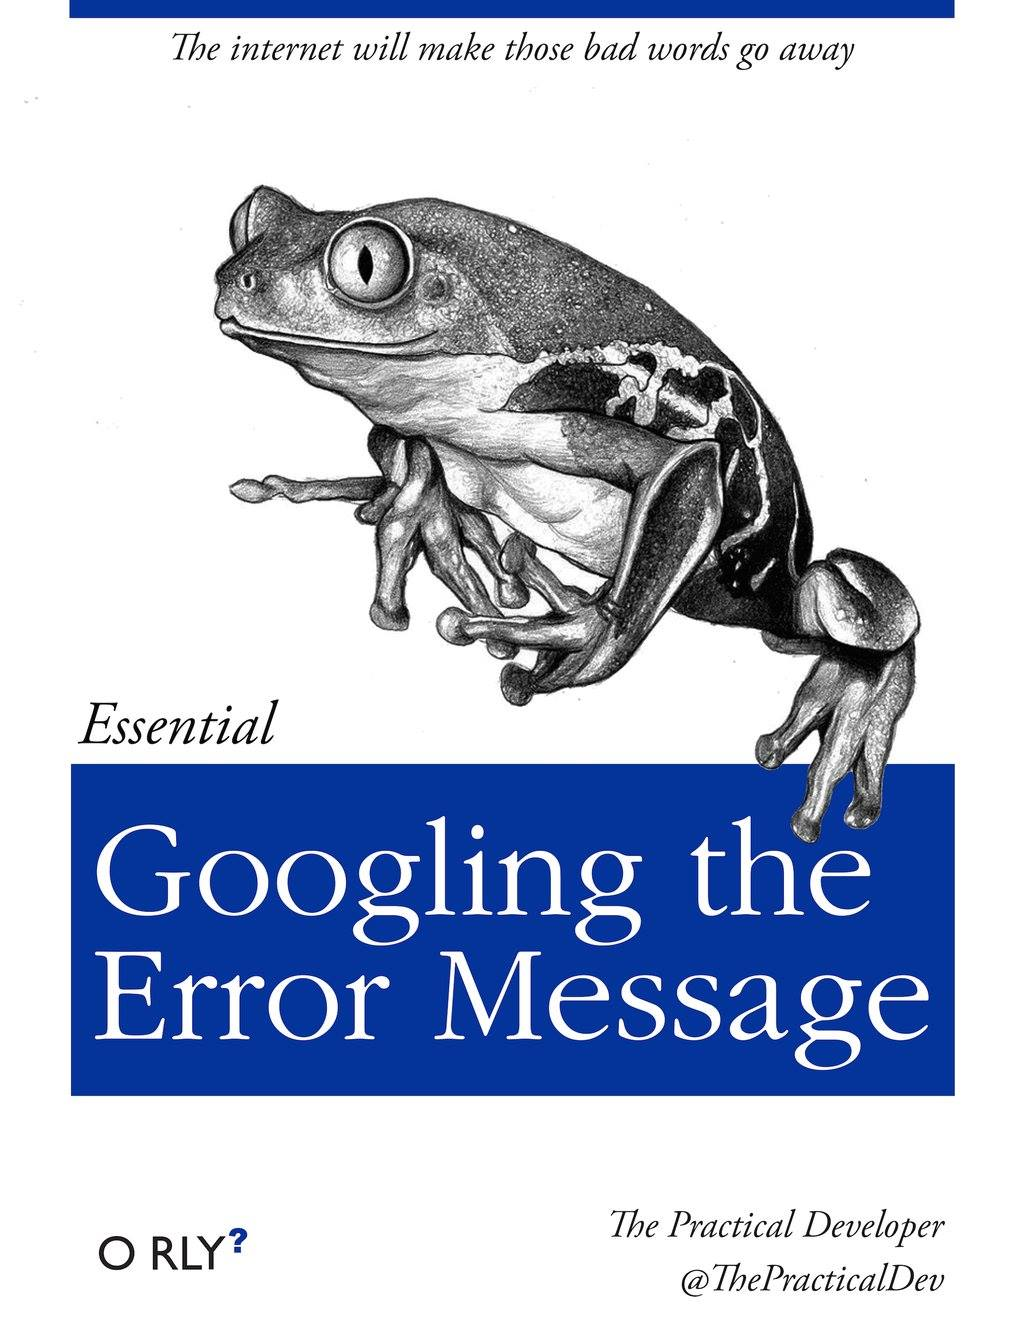 googling the error message, essential o rly?